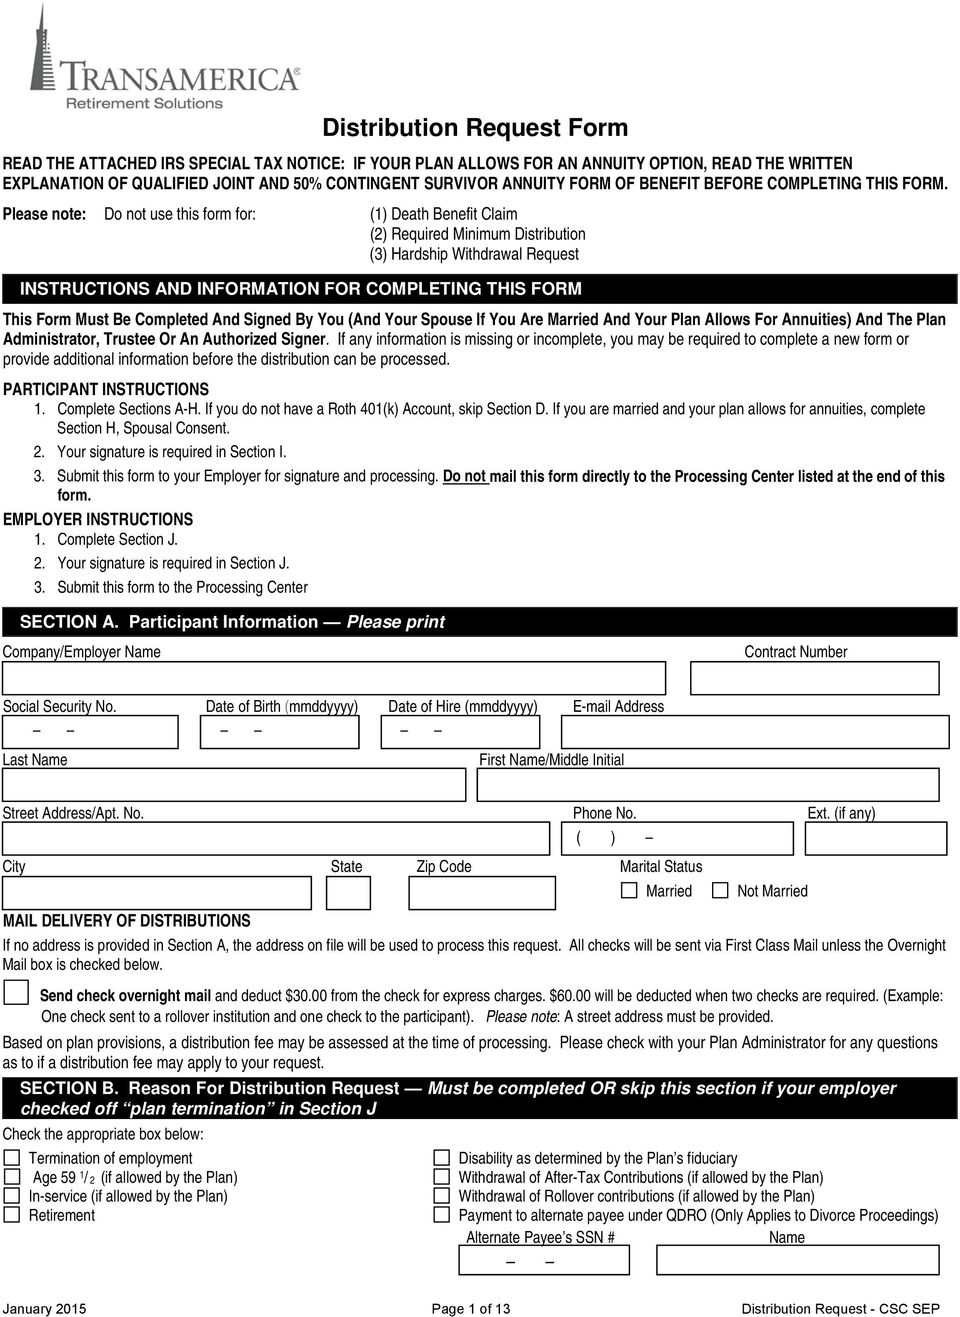 Please note: Do not use this form for: (1) Death Benefit Claim (2) Required Minimum Distribution (3) Hardship Withdrawal Request INSTRUCTIONS AND INFORMATION FOR COMPLETING THIS FORM This Form Must